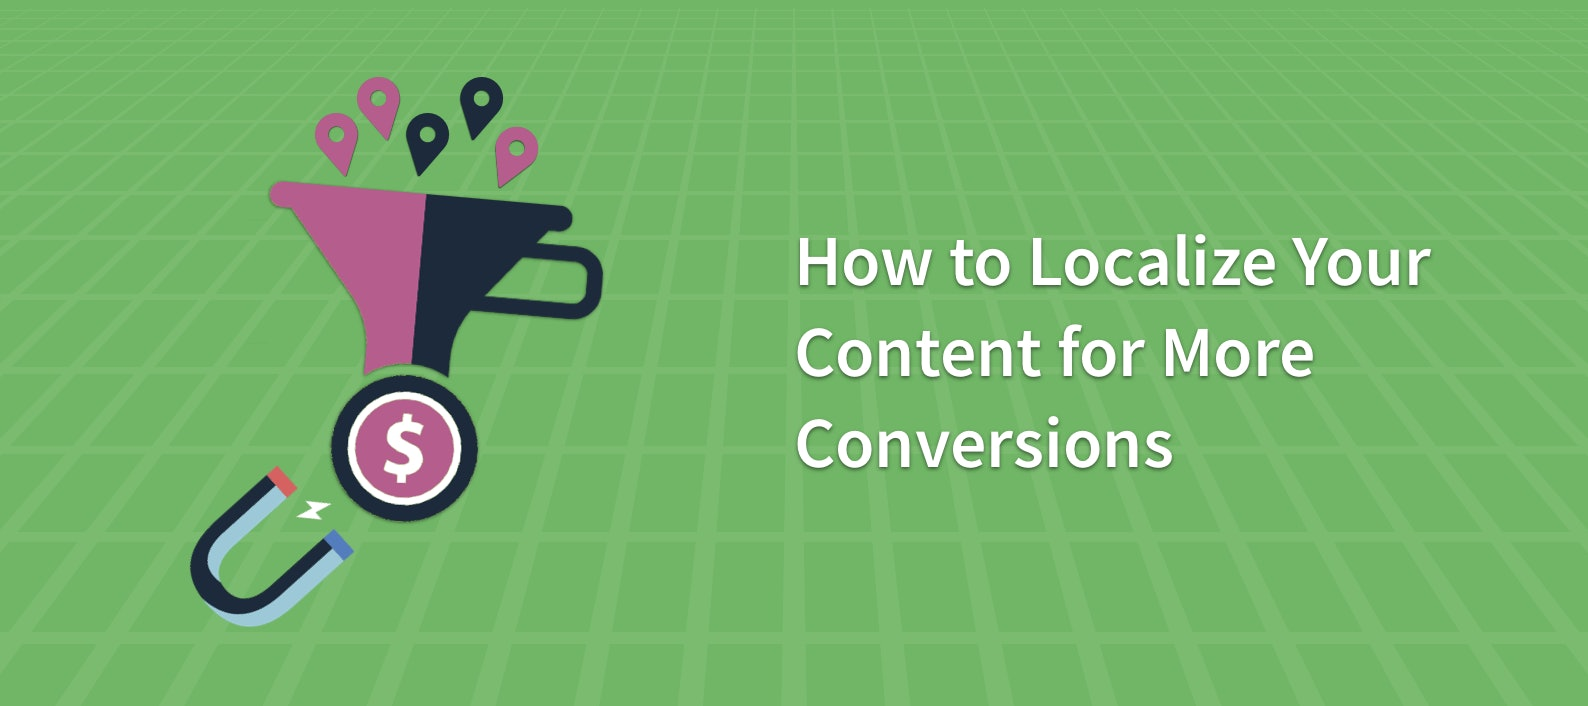 How to Localize Content for More Conversions